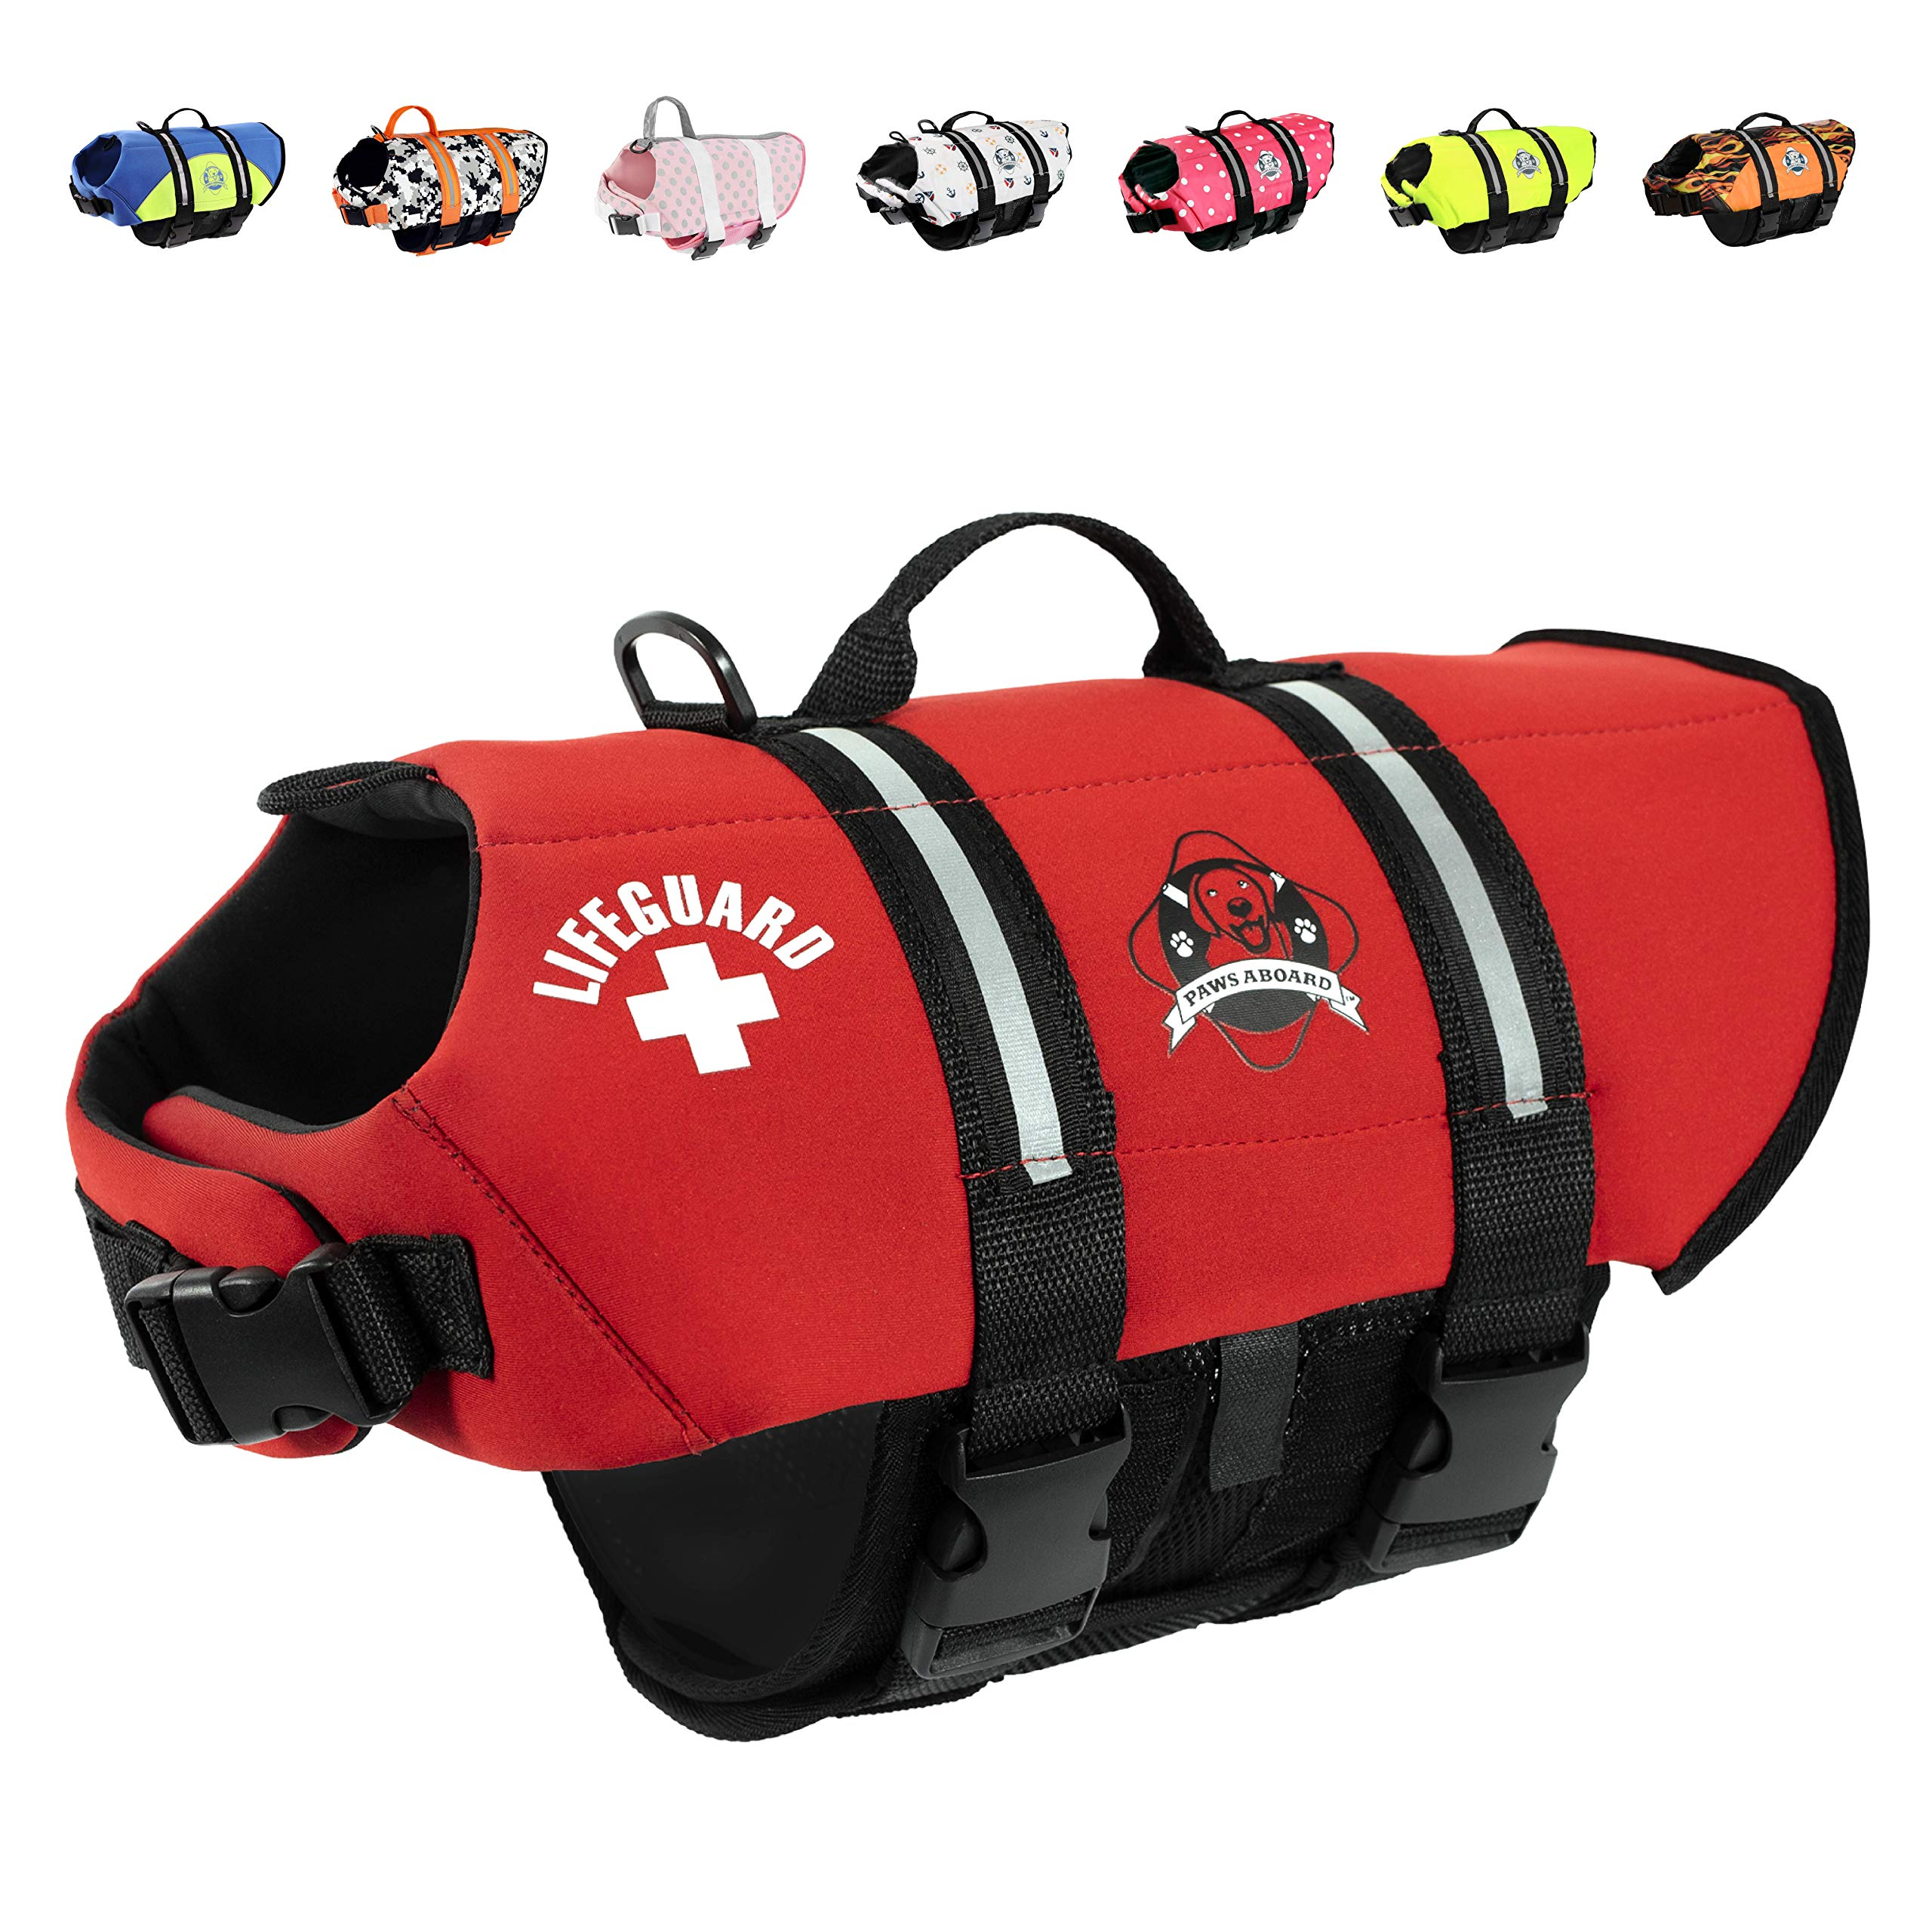 Paws Aboard Extra Large Neoprene Designer Doggy Red Life Guard/Jacket Upto Over 90 Lbs